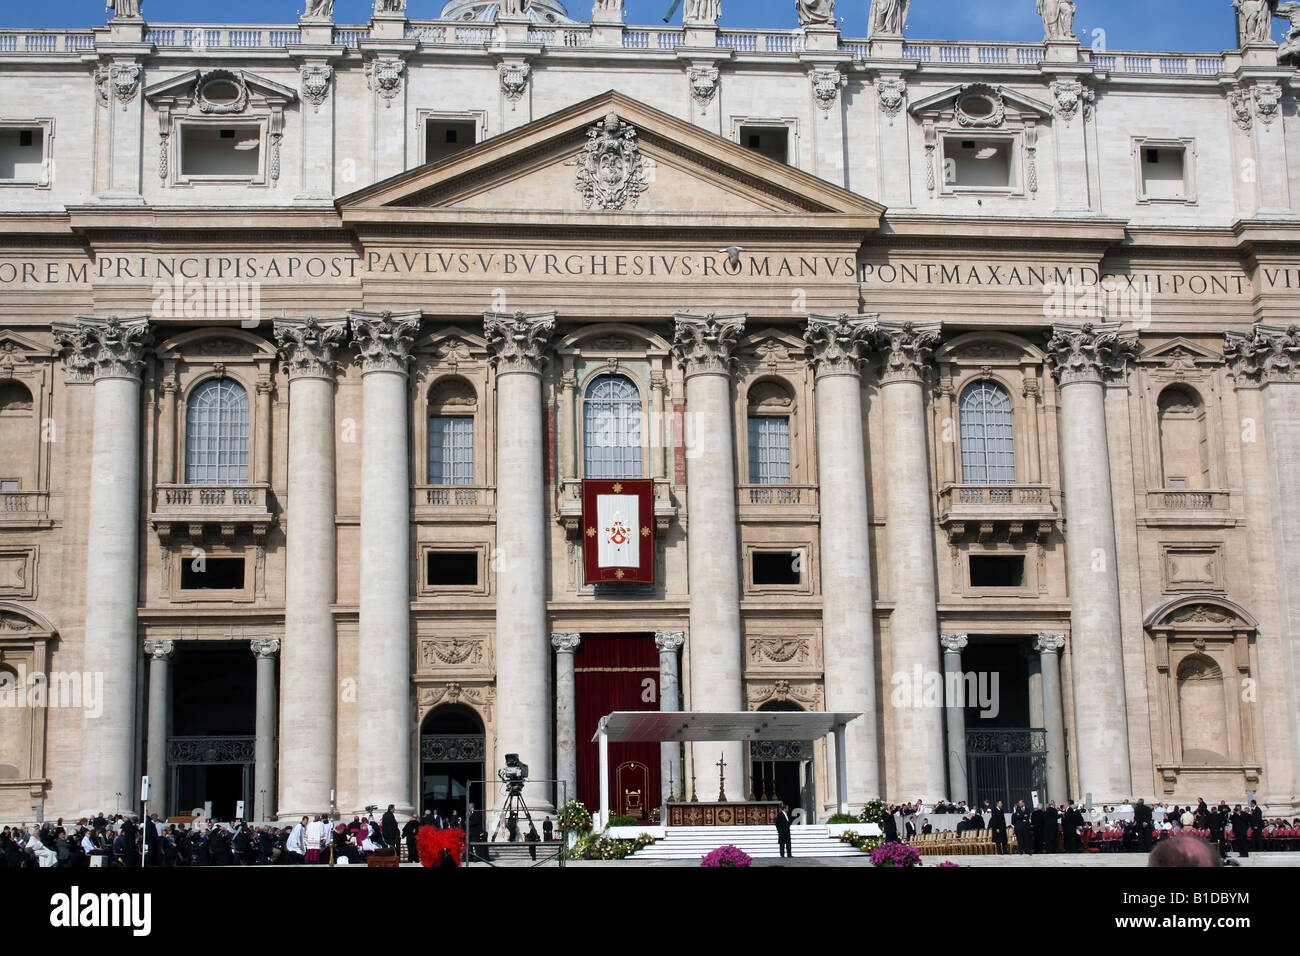 ITALY, ROME, VATICAN. Special Mass on Anniversary of John Paul II s Death April 02 2008 Leads by Pope Benedict XVI - Stock Image